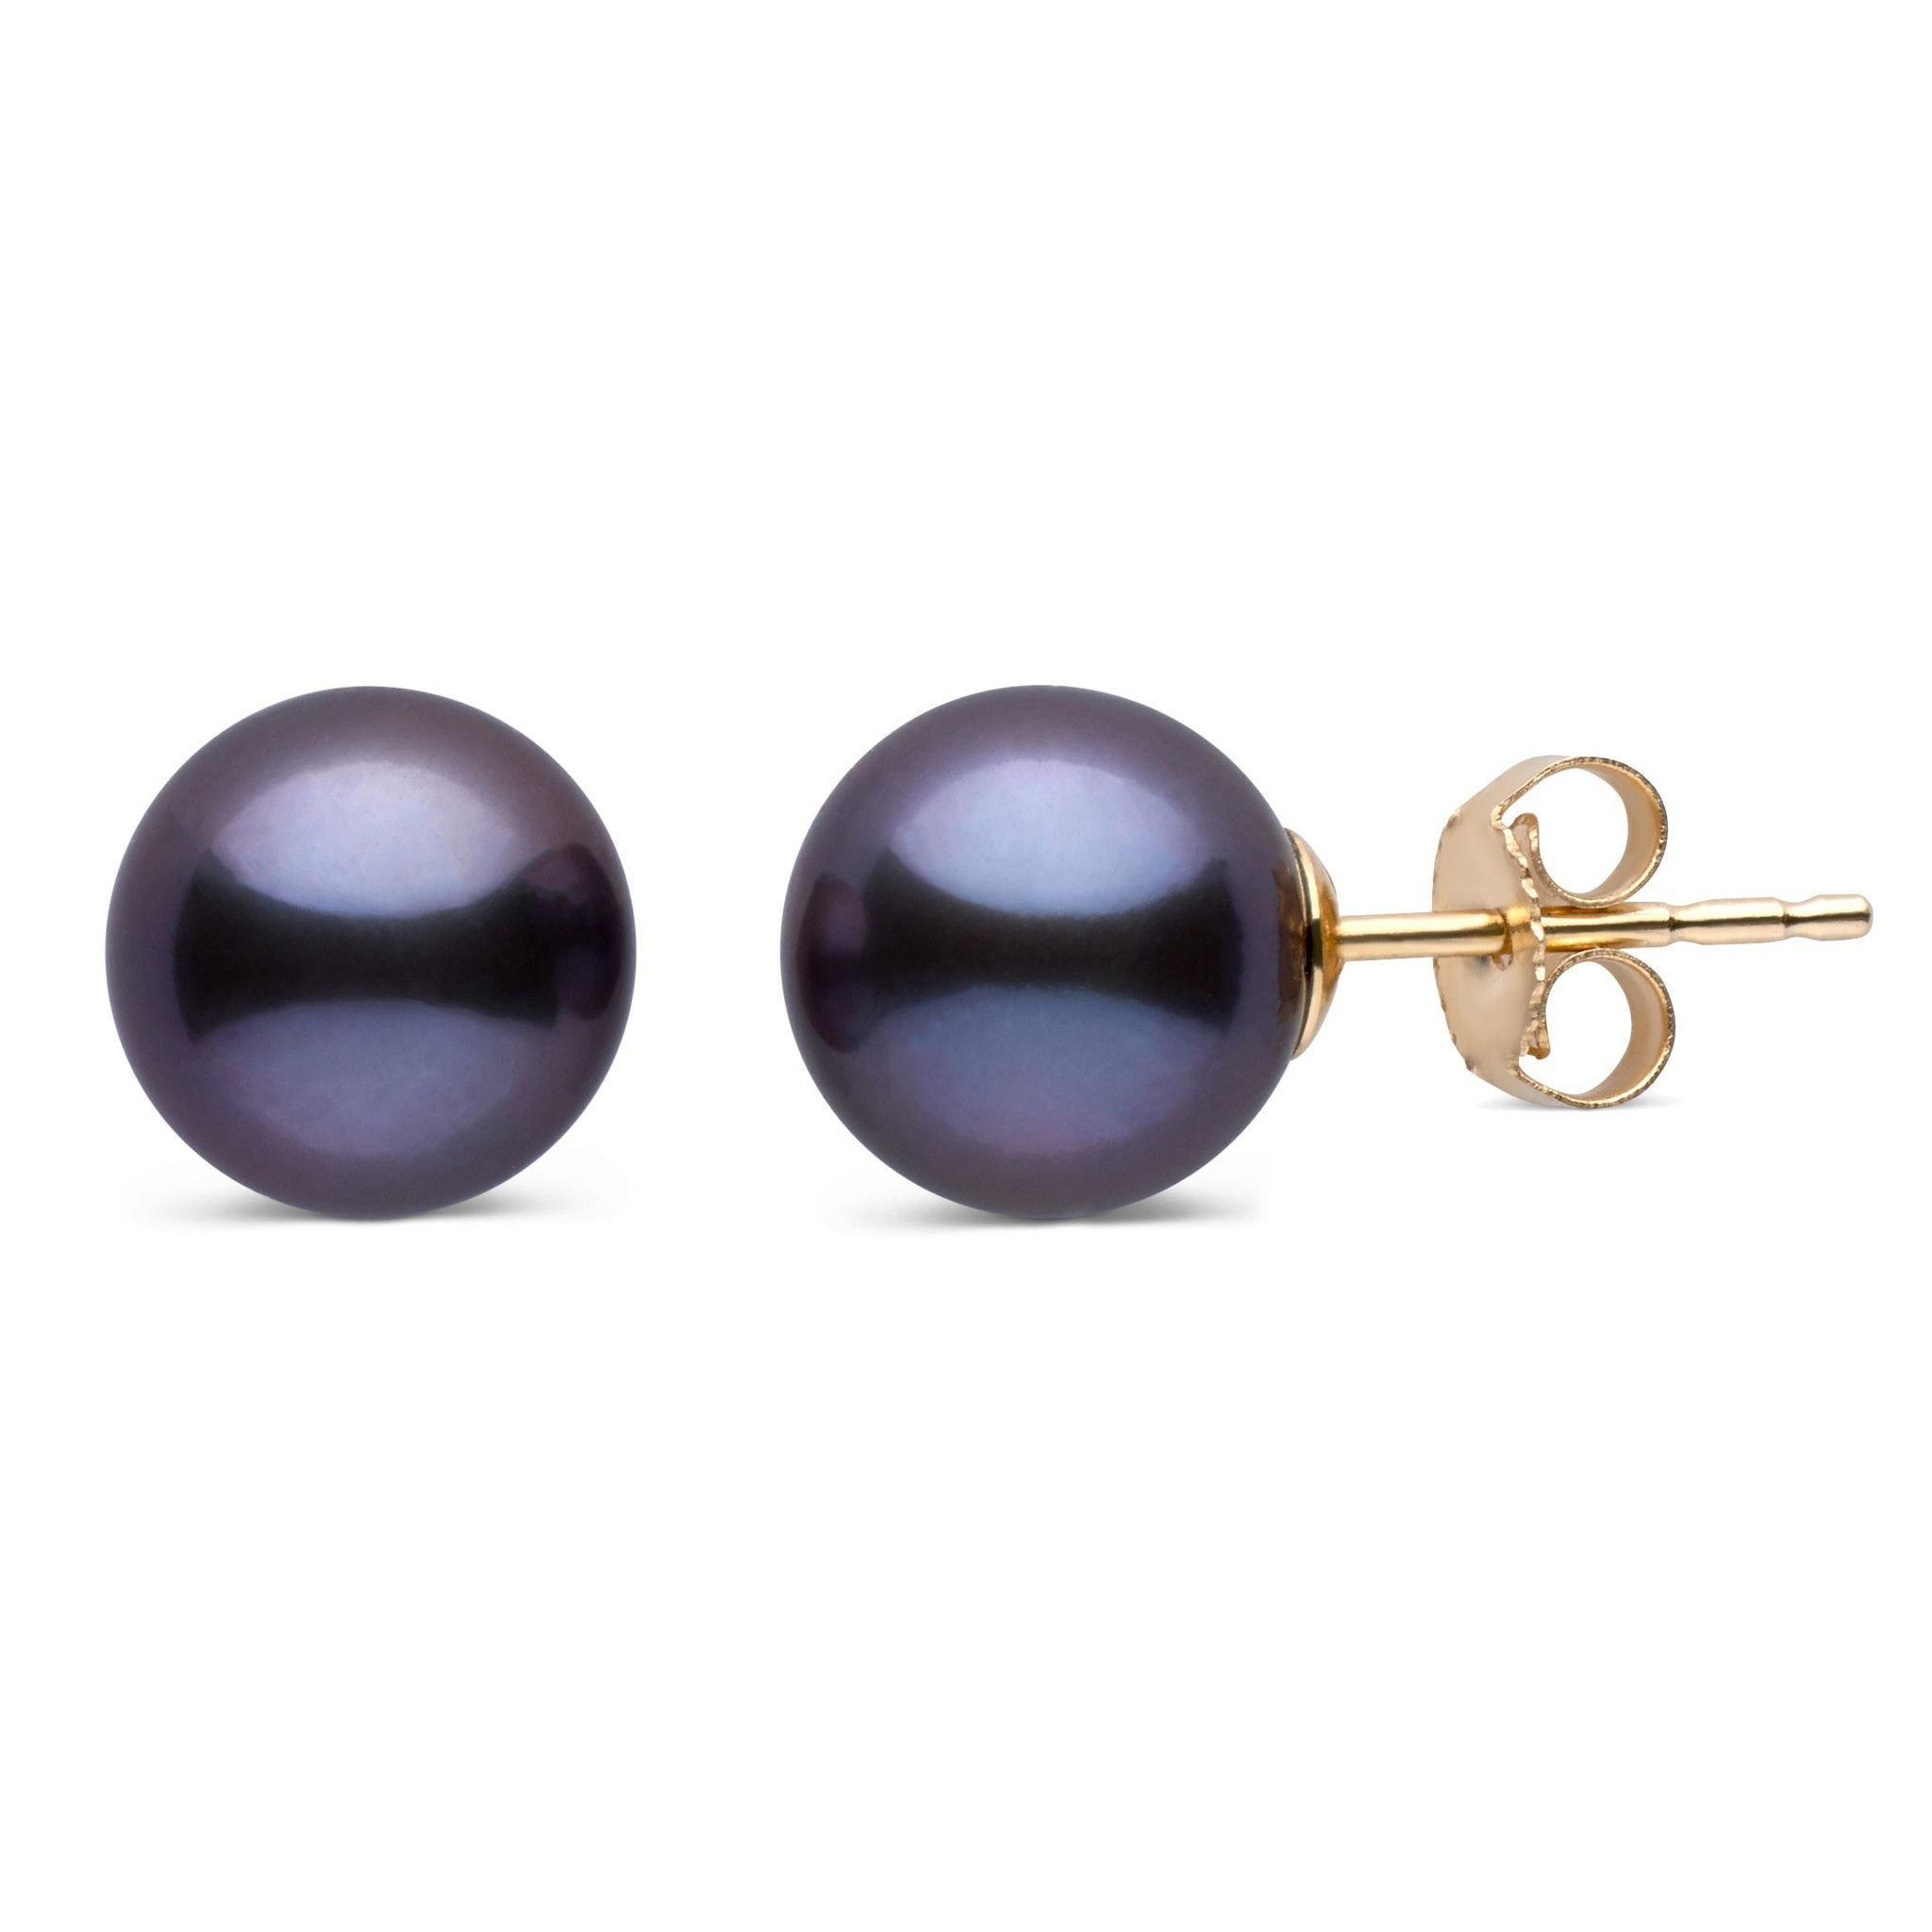 8.5-9.0 mm AAA Black Freshwater Pearl Stud Earrings